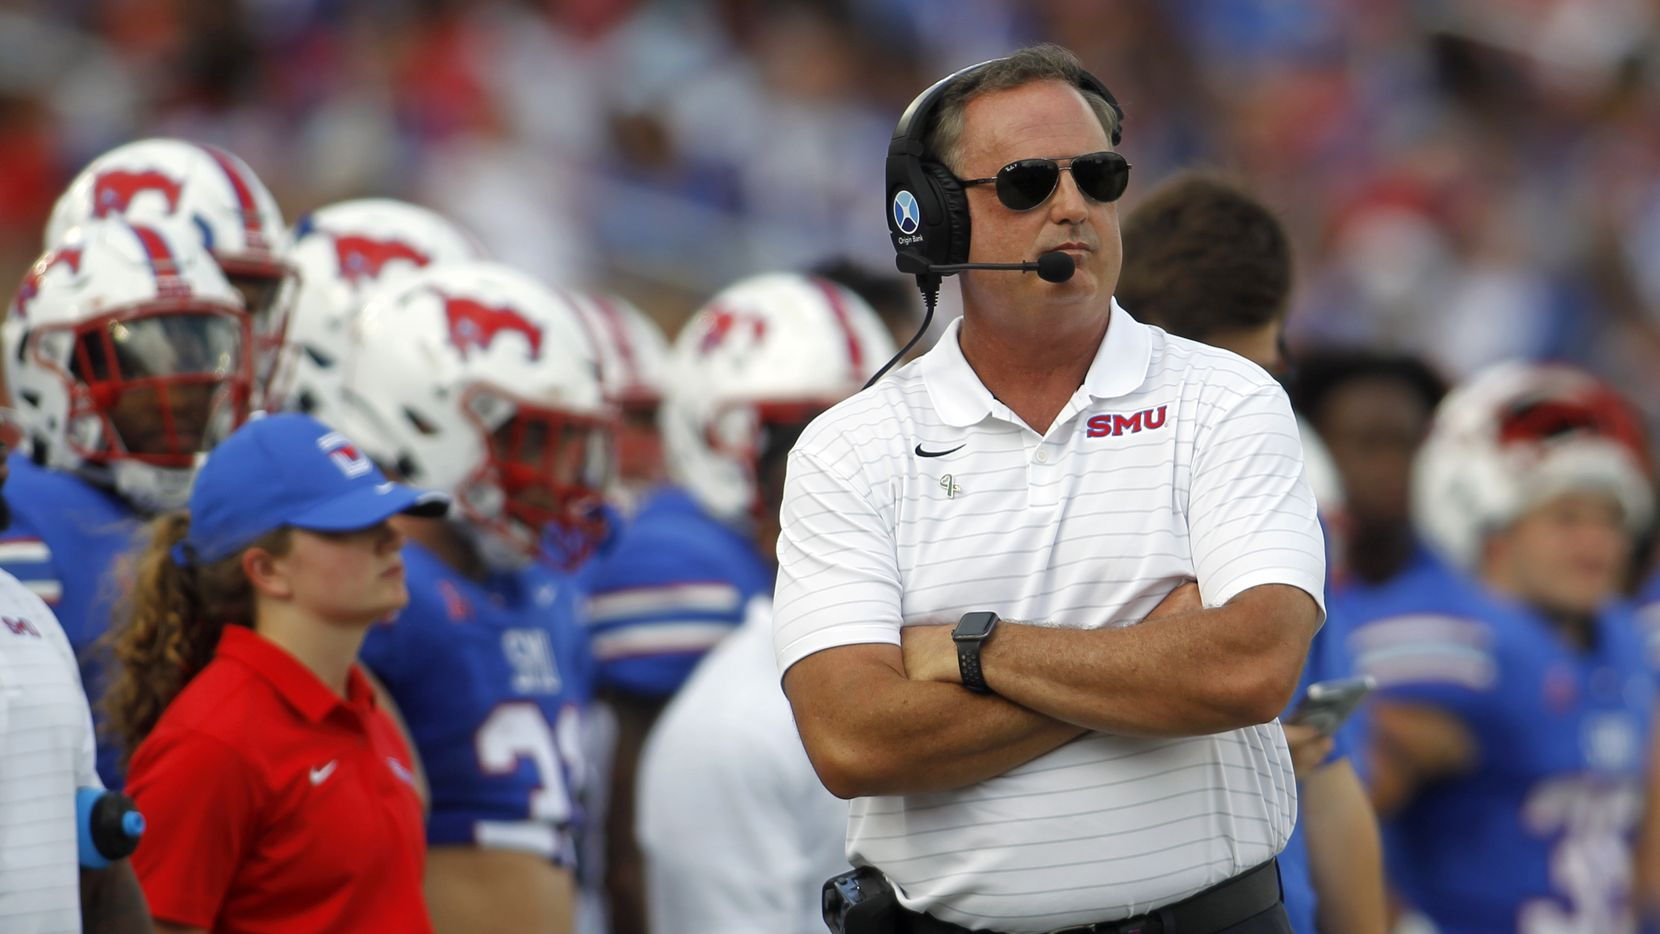 SMU head coach Sonny Dykes looks on from the team bench area during first half action against South Florida. The two teams played their NCAA football game at SMU's Ford Stadium in Dallas on October 2, 2021.